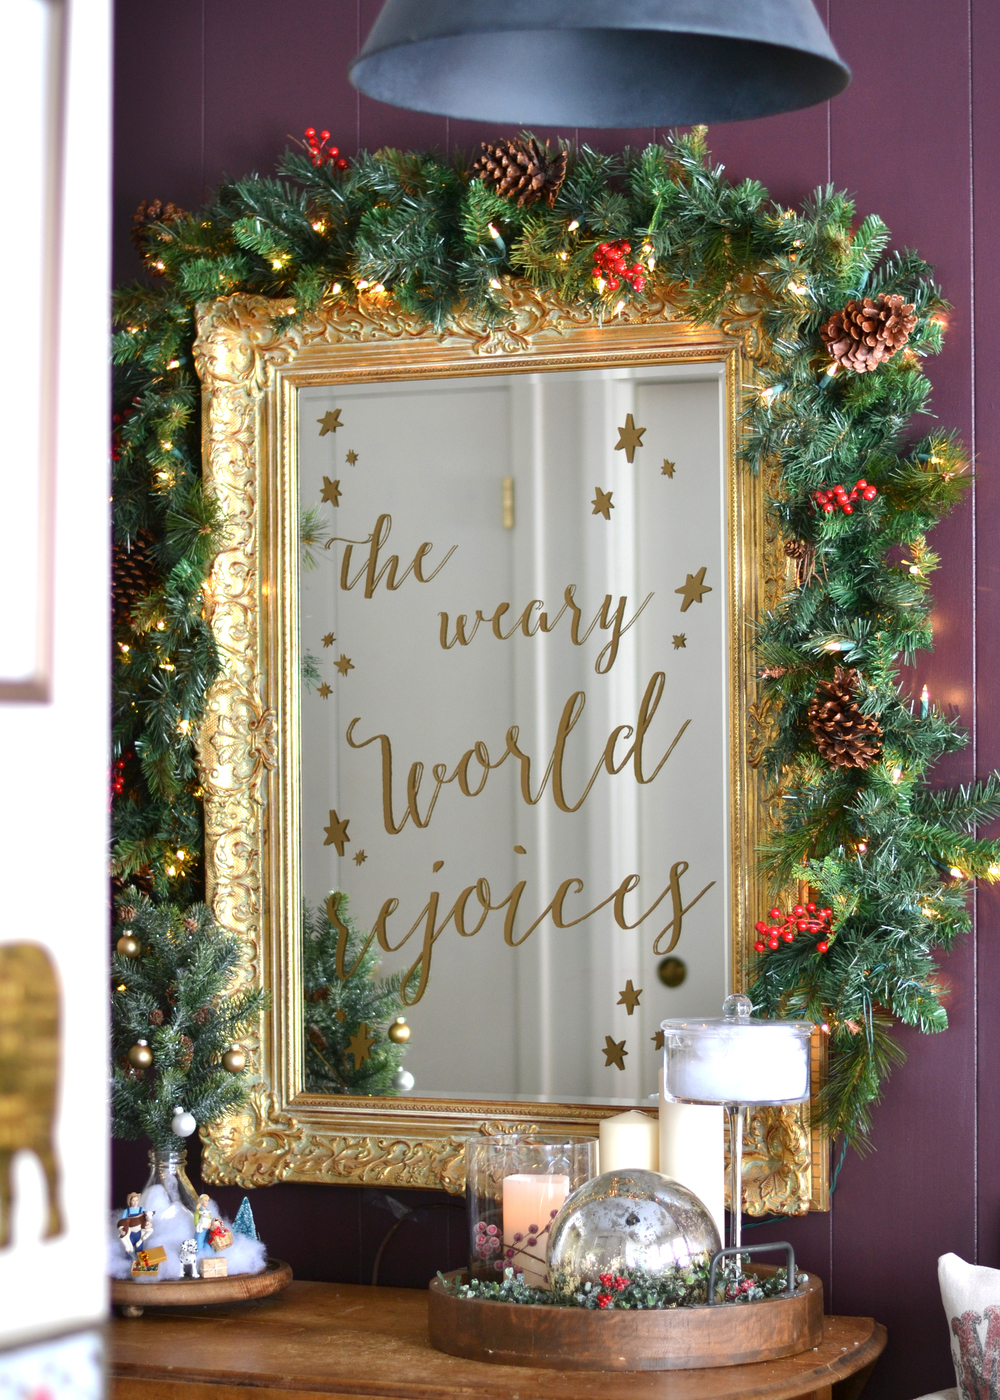 DIY Christmas sign on a mirror! Great idea from boxwoodavenue.com